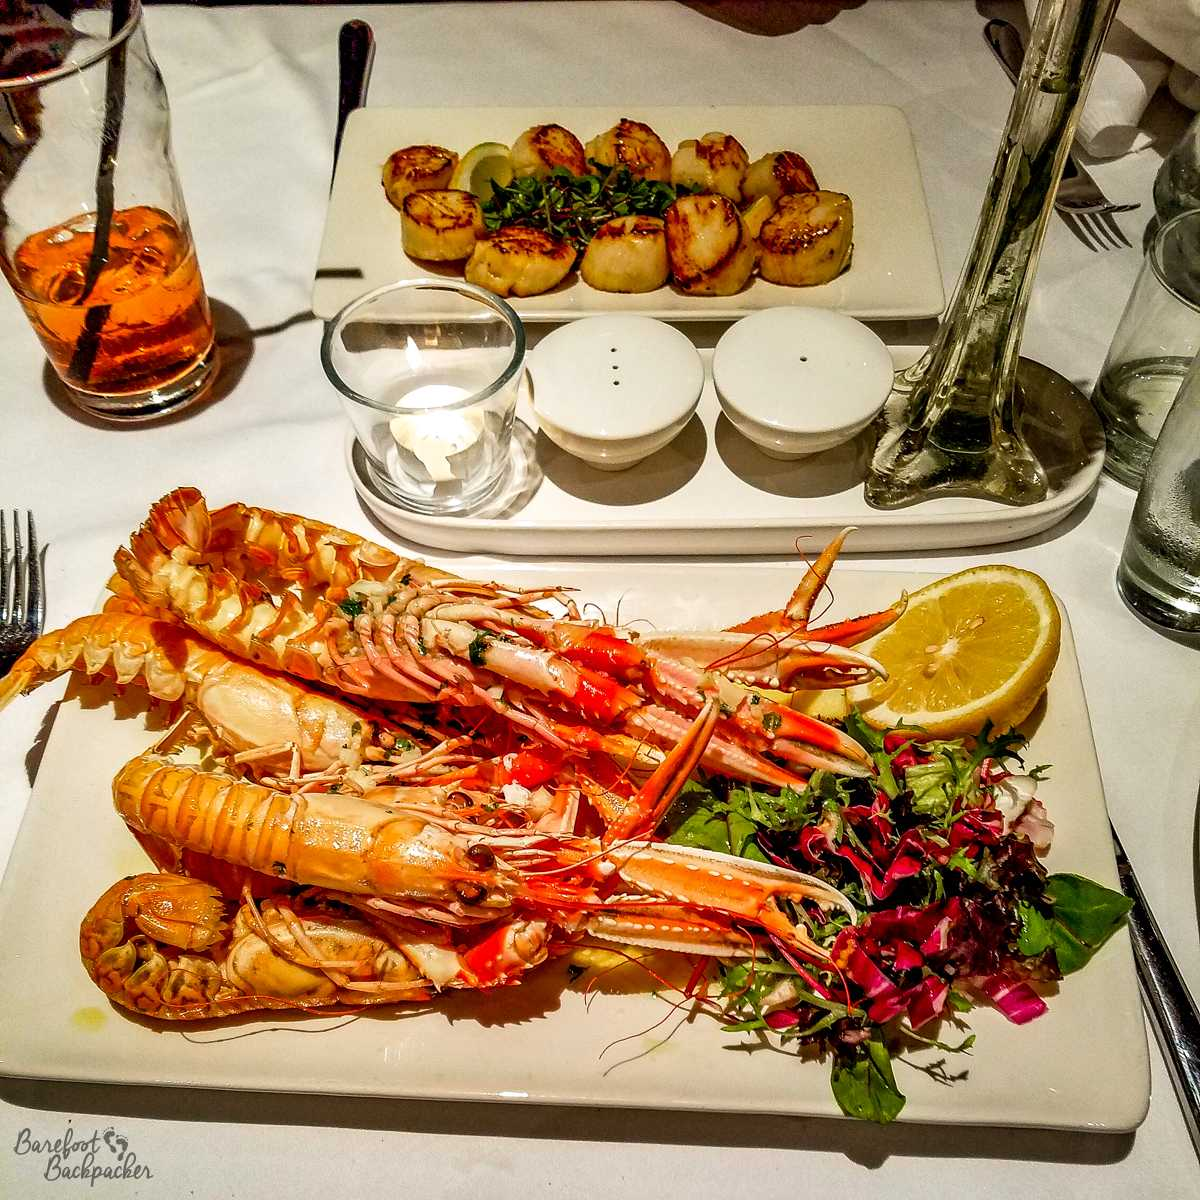 Seafood at a restaurant on Loch Fyne. It mainly consists of several langoustines, wider than the plate they're served on. There are also a plate of scallops, salad, lemon, and whisky in shot.